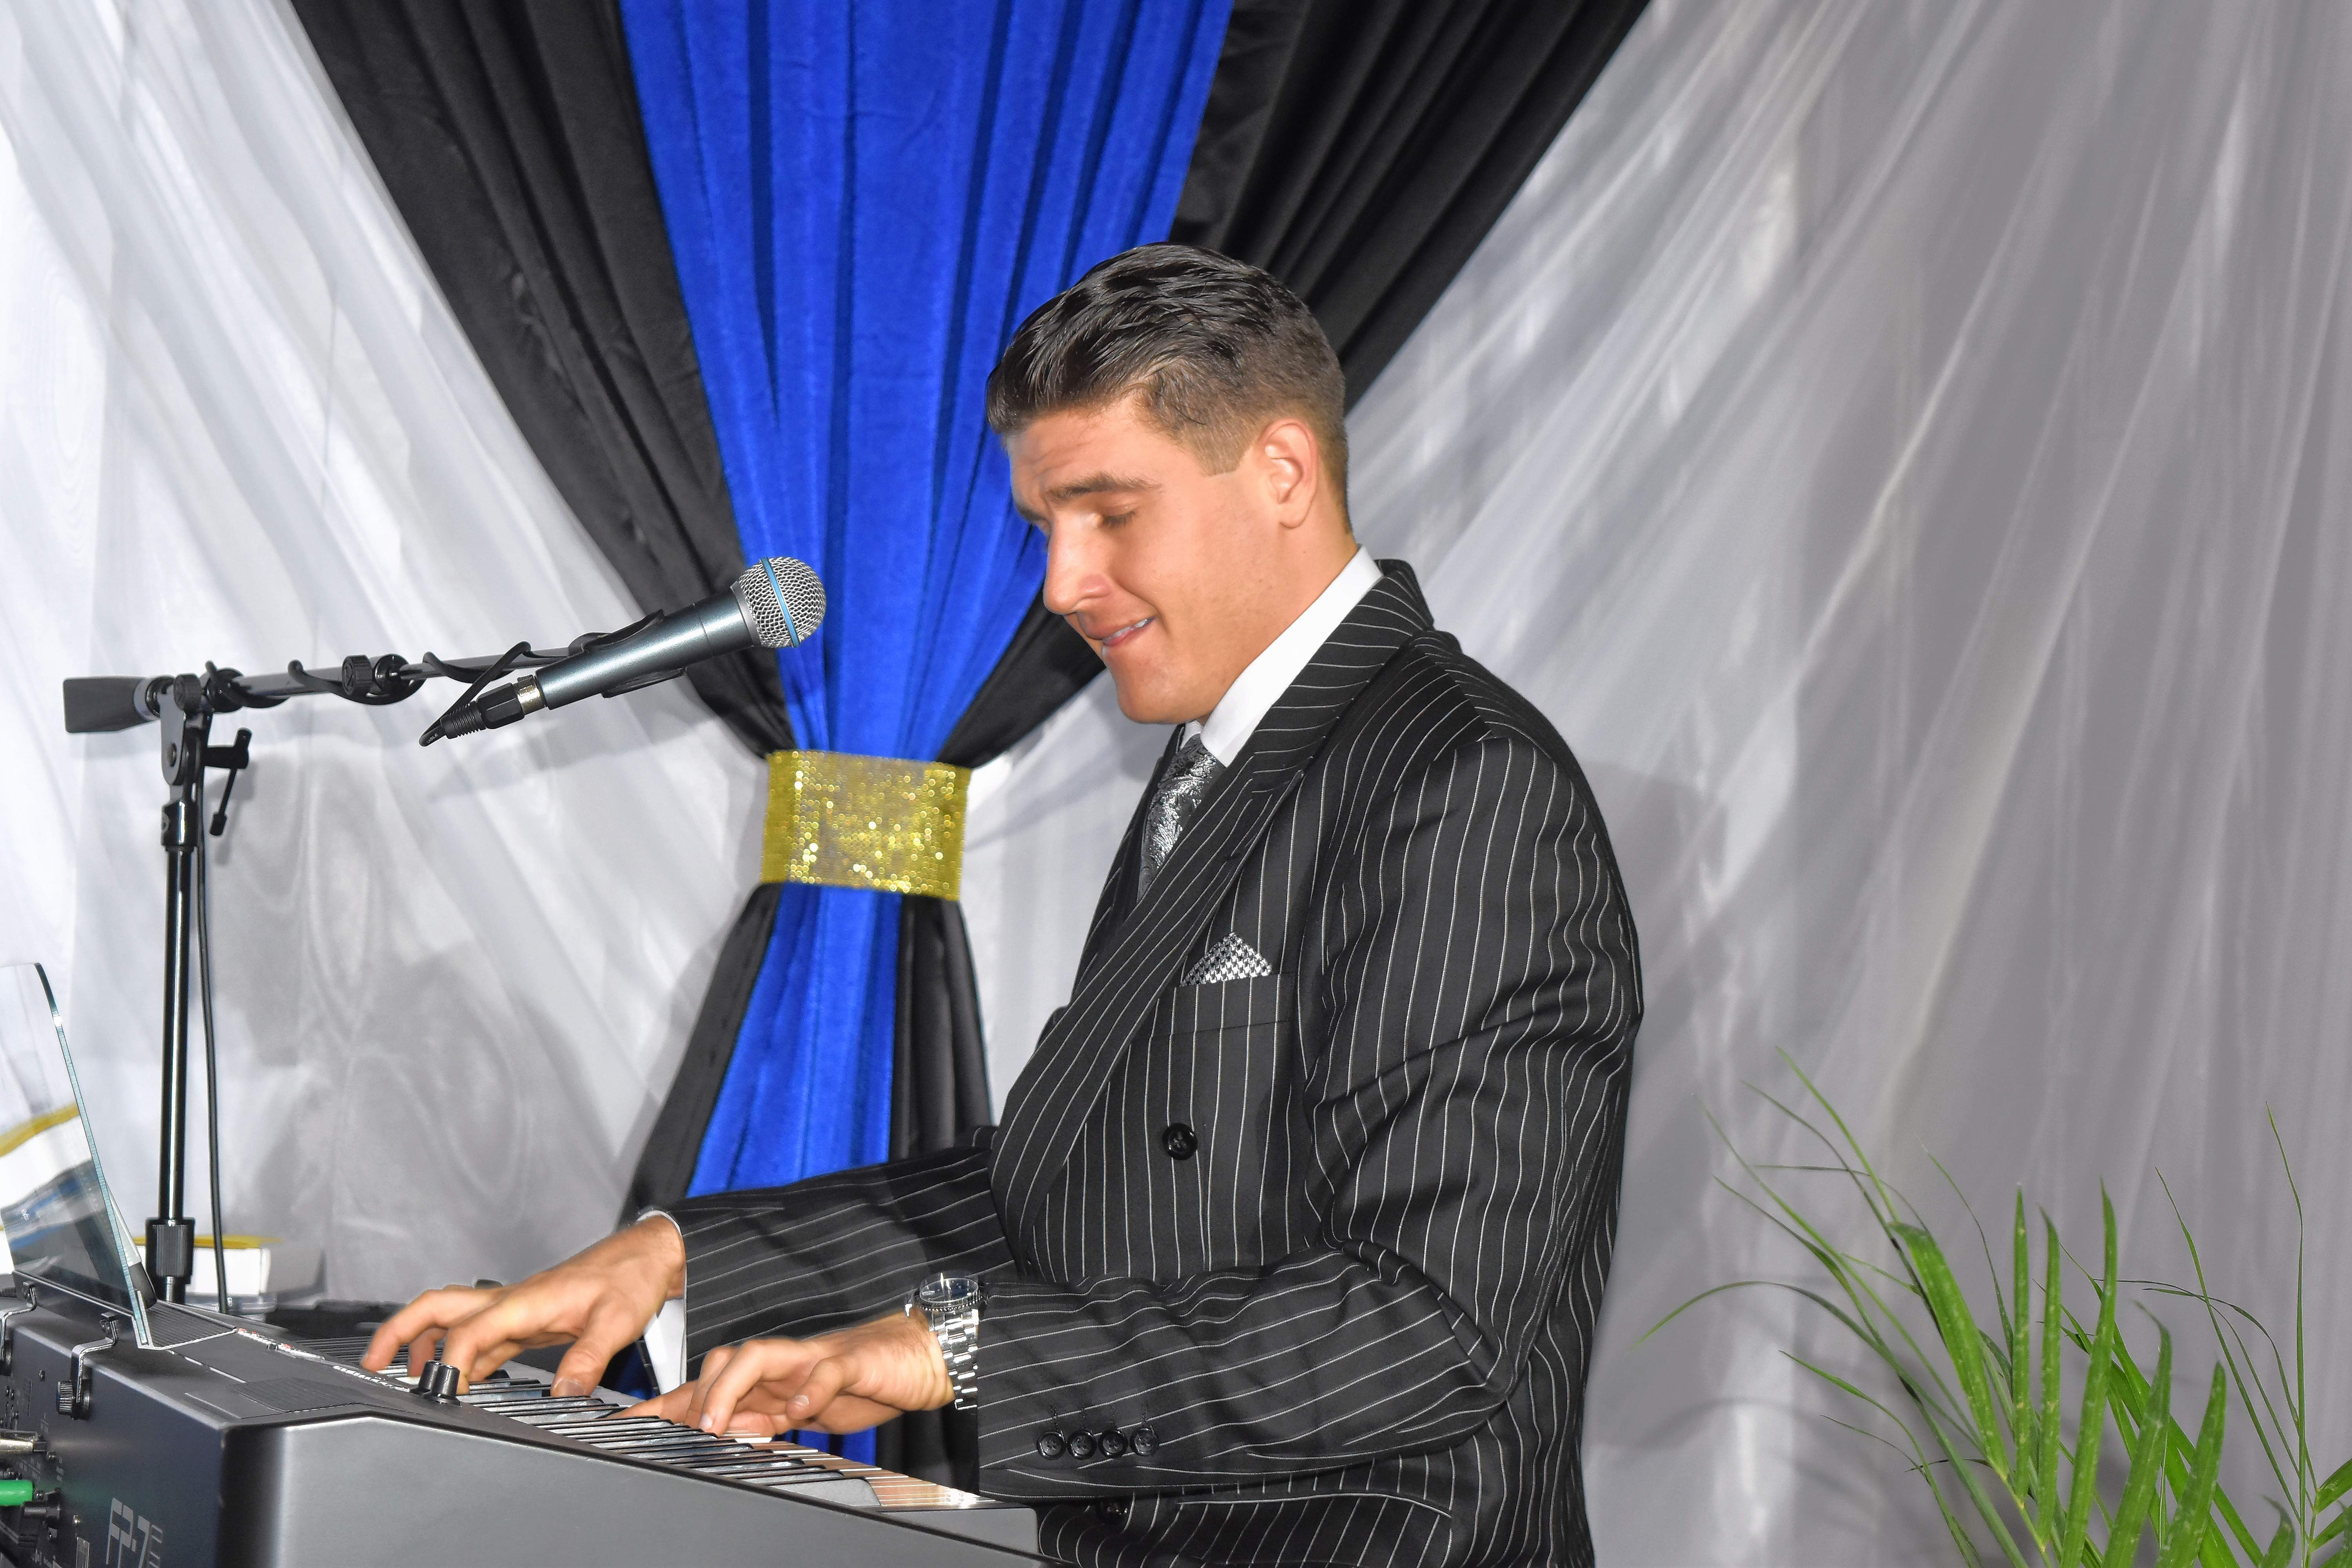 Pianist Brock Bertling provided some musical entertainment Friday prior to the start of the annual Chamber dinner.